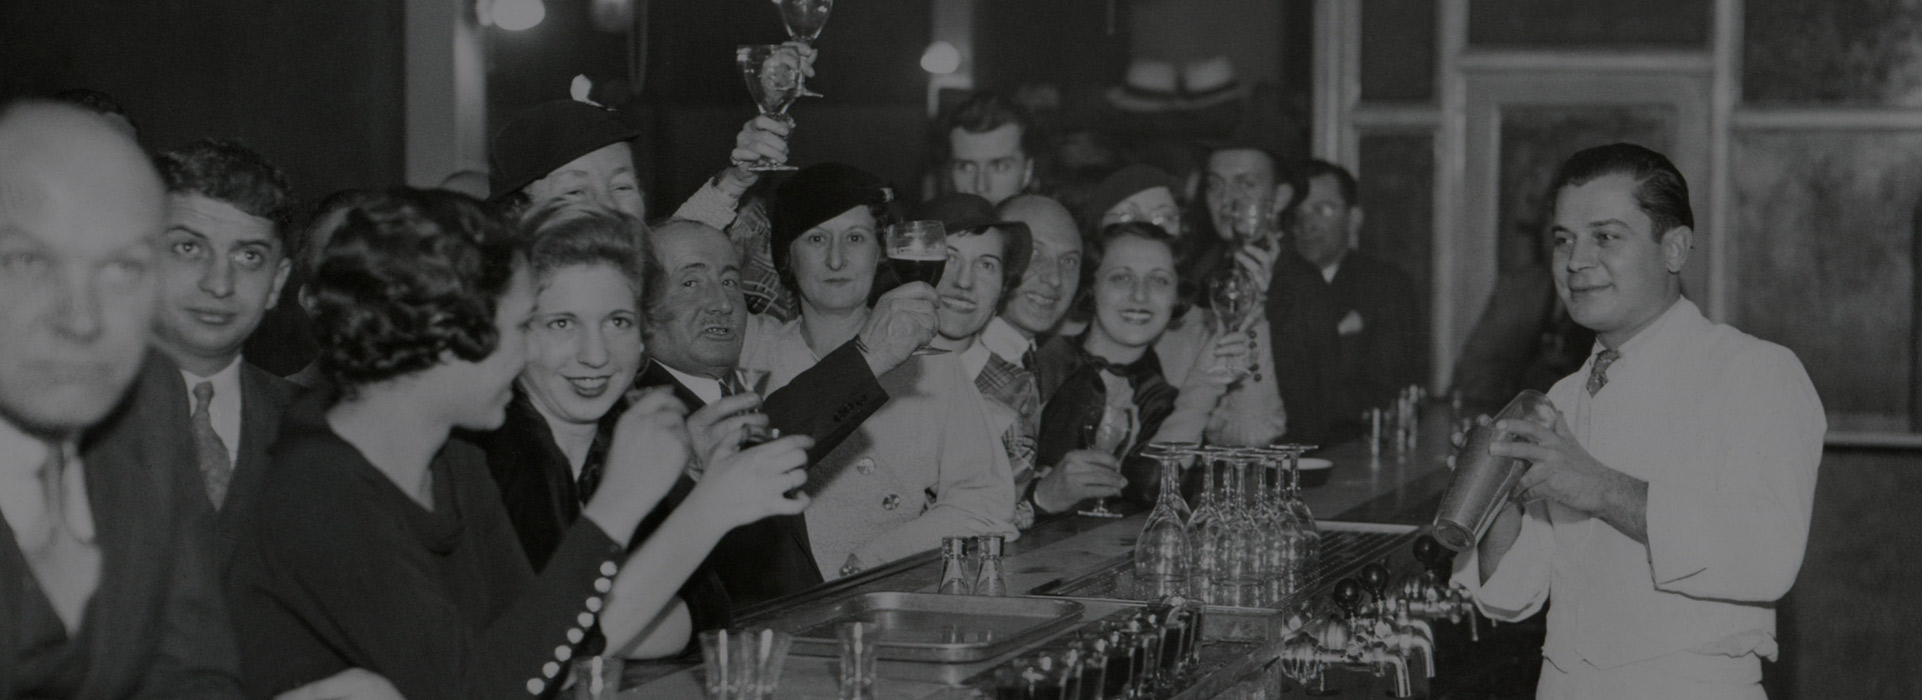 Good Times: Customers at a Philadelphia bar after Prohibition's end, Dec. 1933.